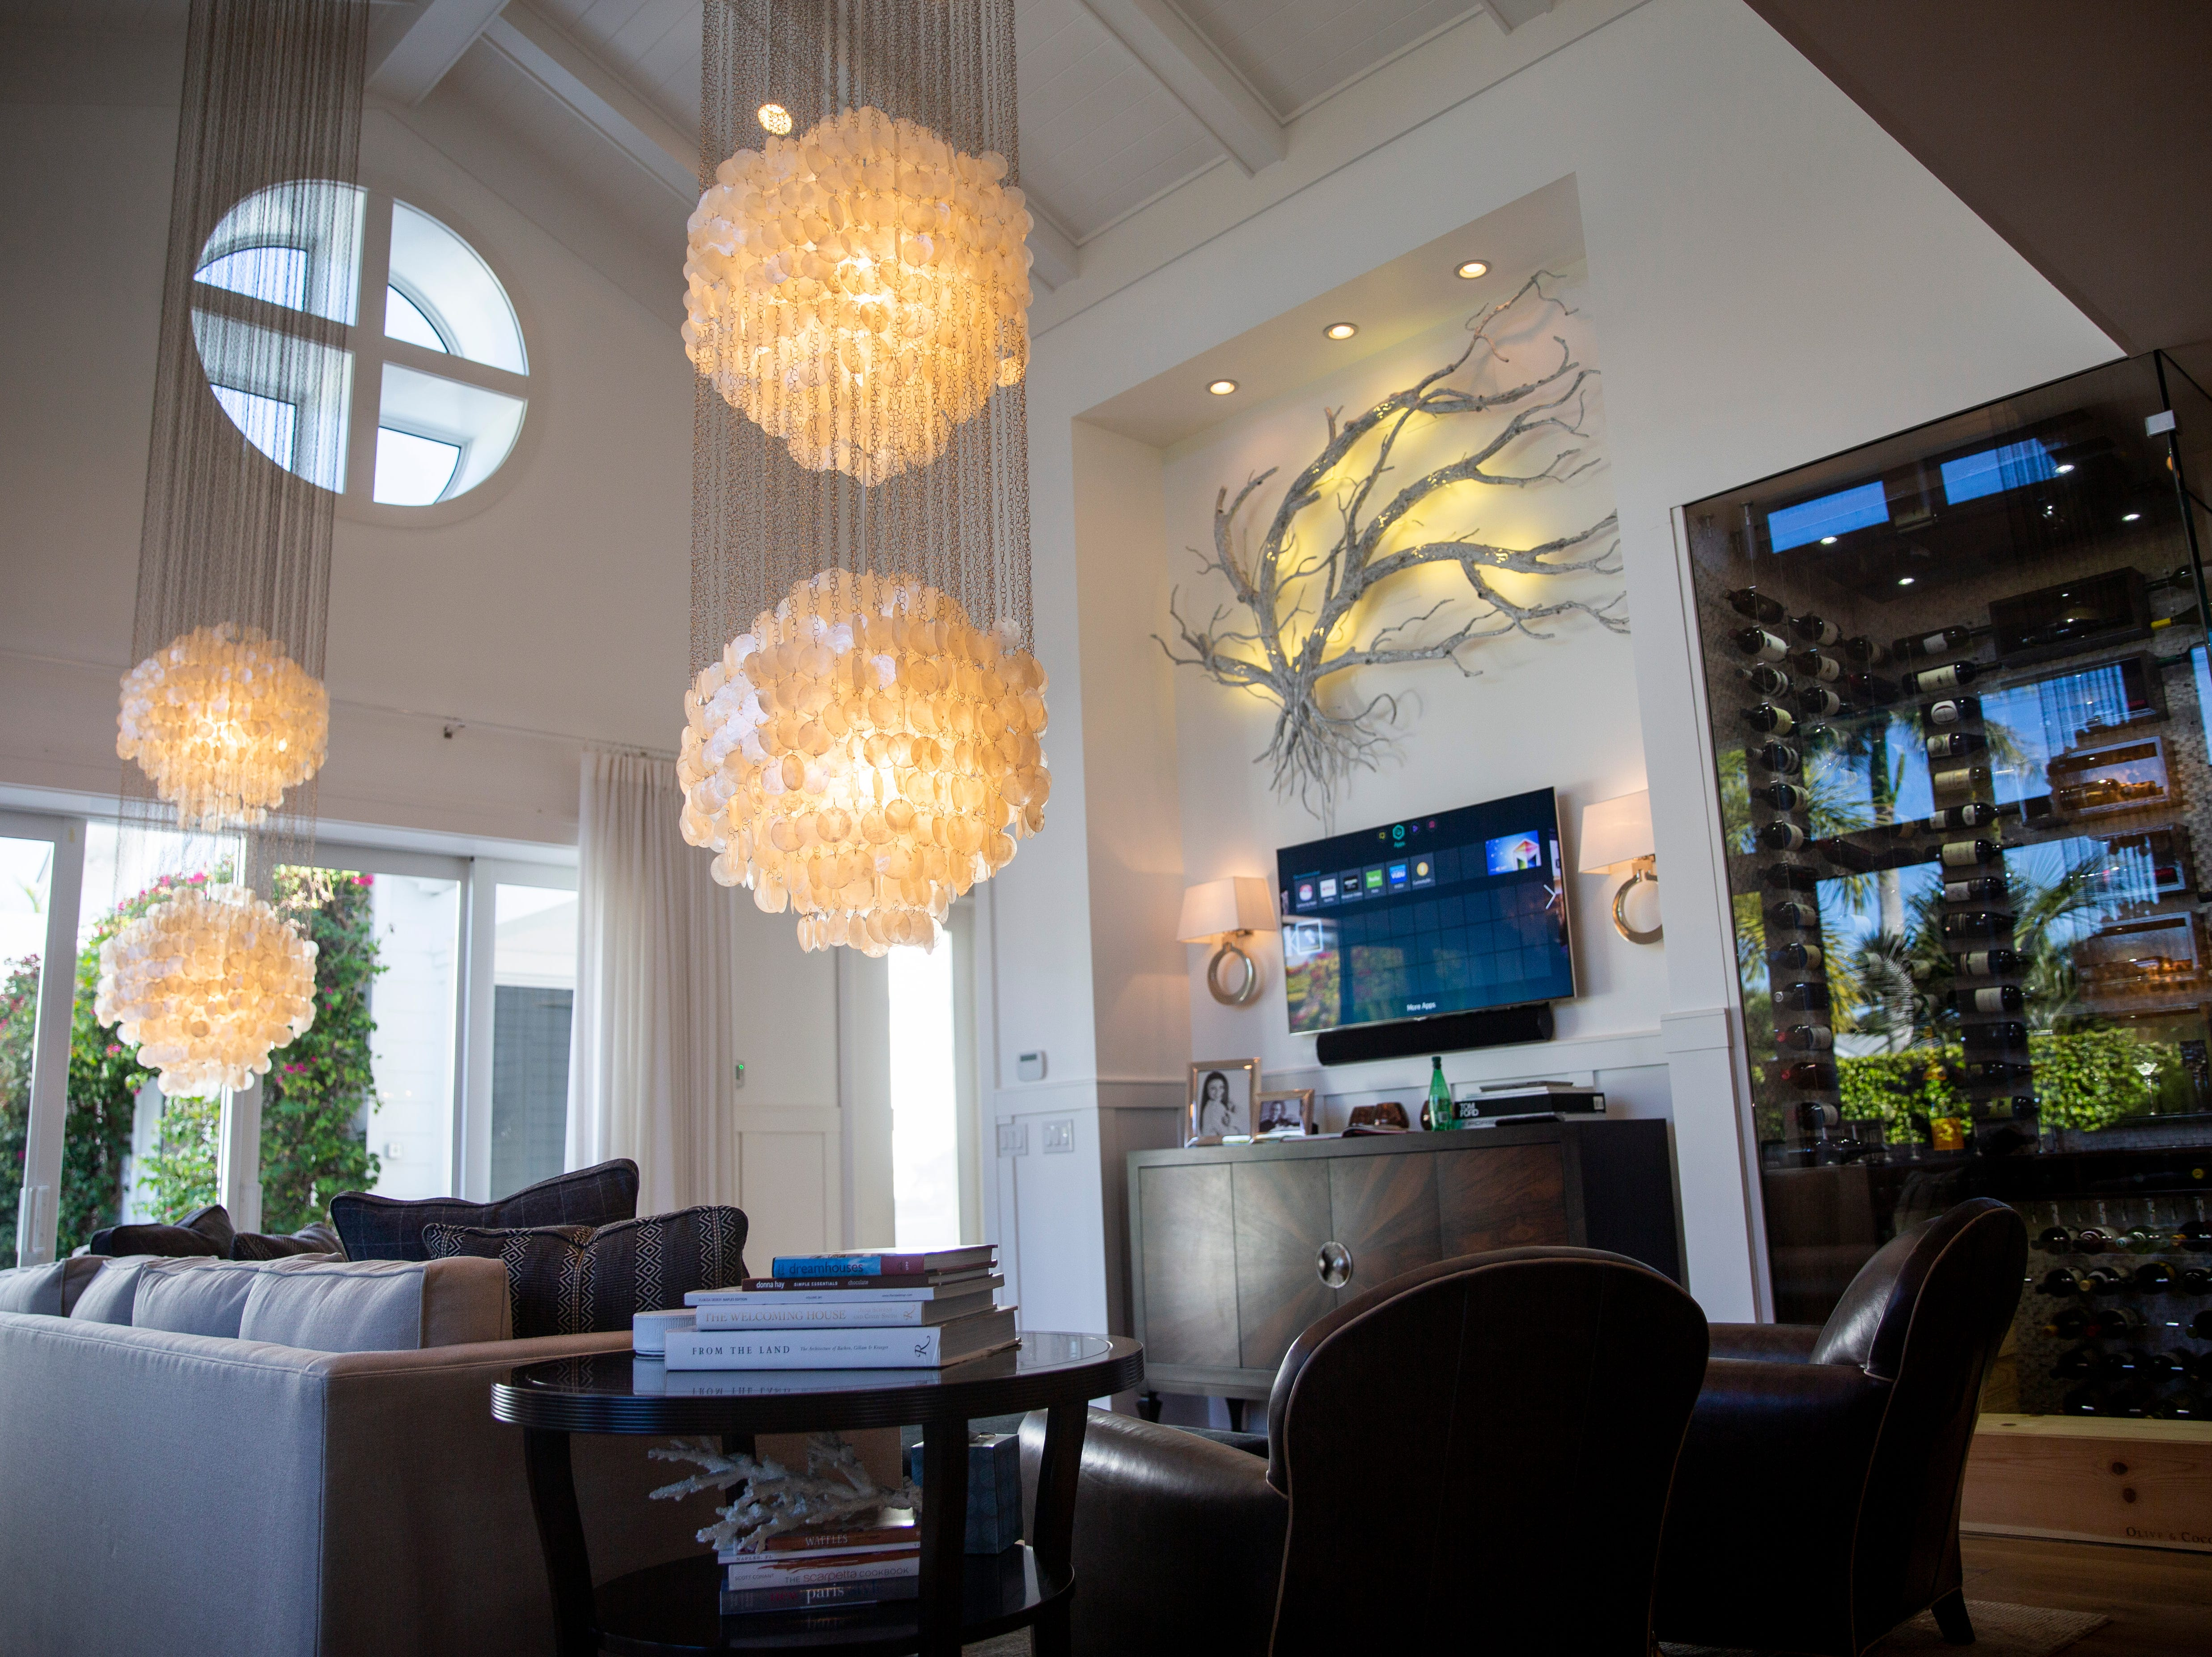 A home on Broad Ave, designed by Broad Avenue Studios, is open to guests during the 7th annual Kitchen Tour, hosted by the Naples Woman's Club in Naples on Wednesday, January 16, 2019.